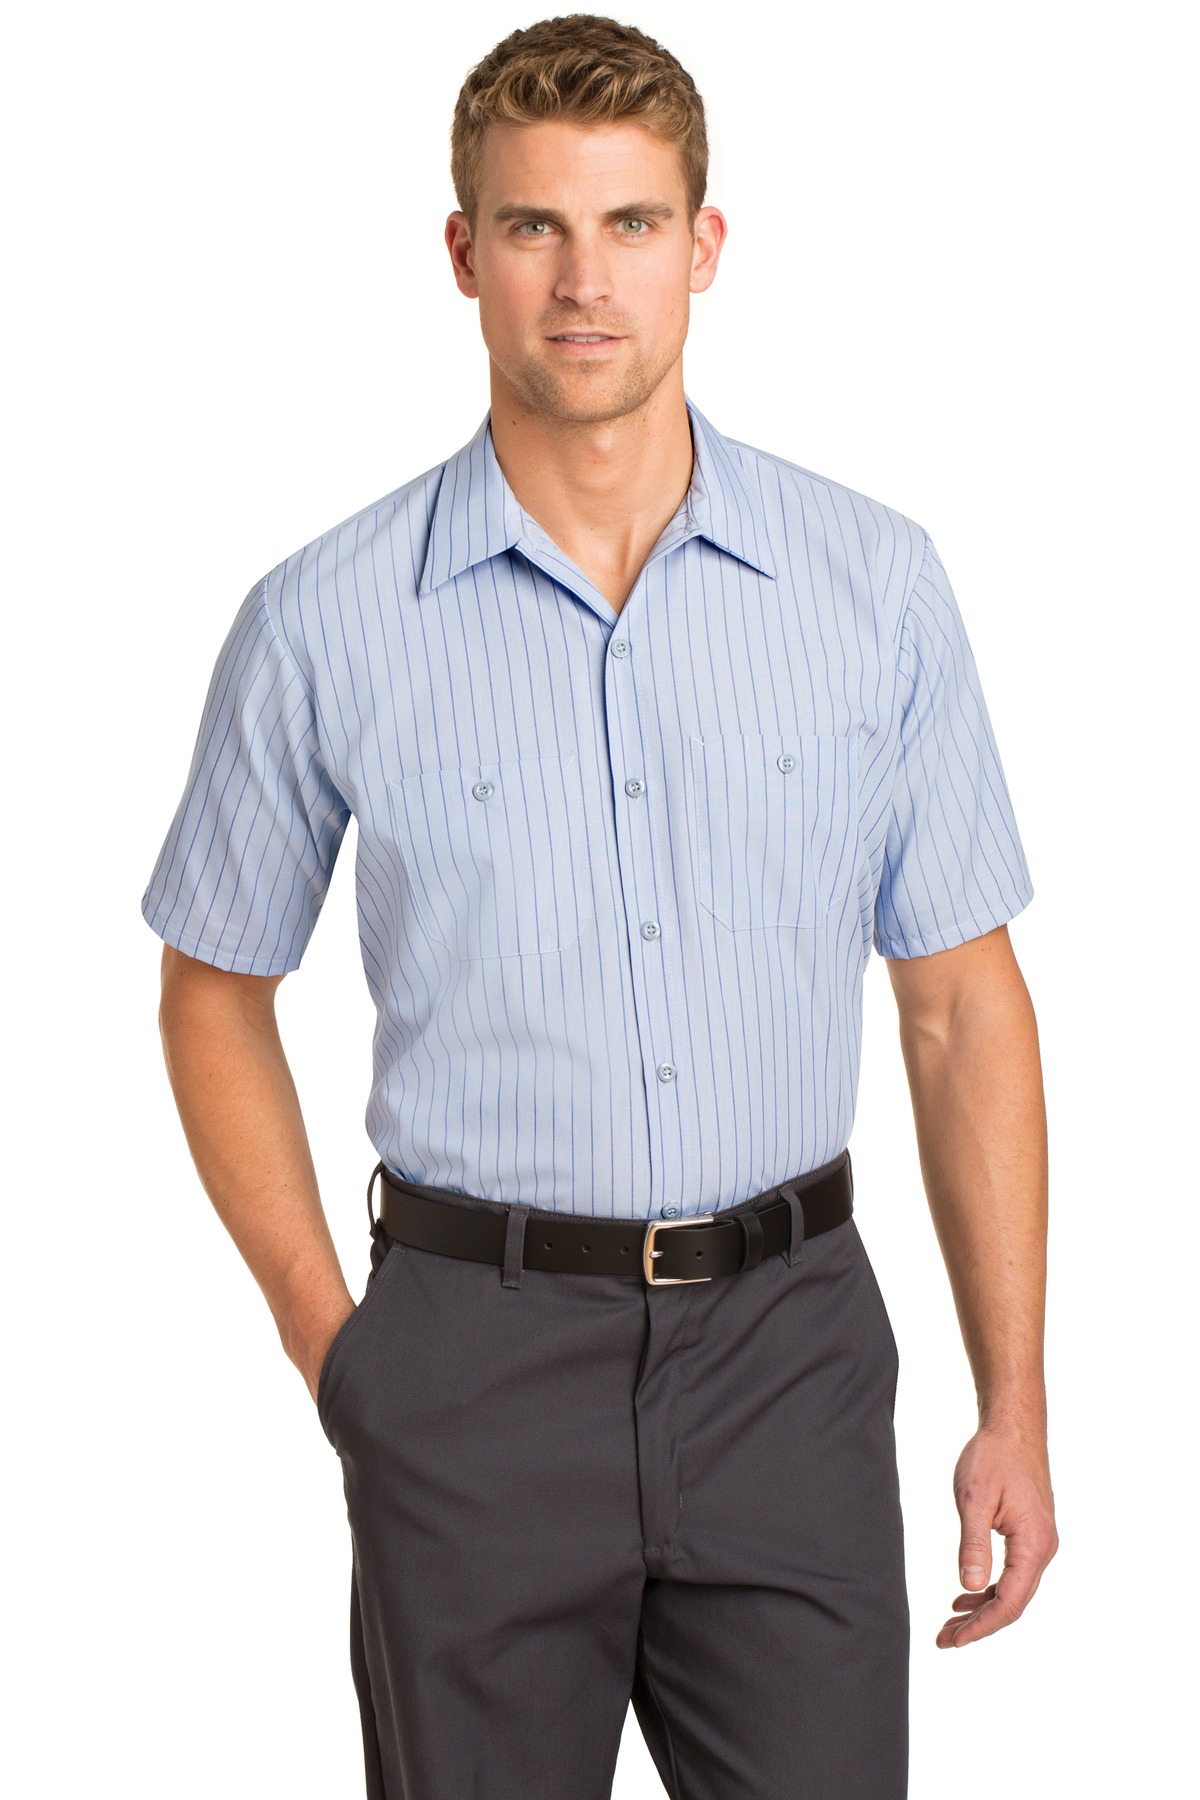 Red Kap ®  Short Sleeve Striped Industrial Work Shirt.  CS20 - Light Blue/ Navy